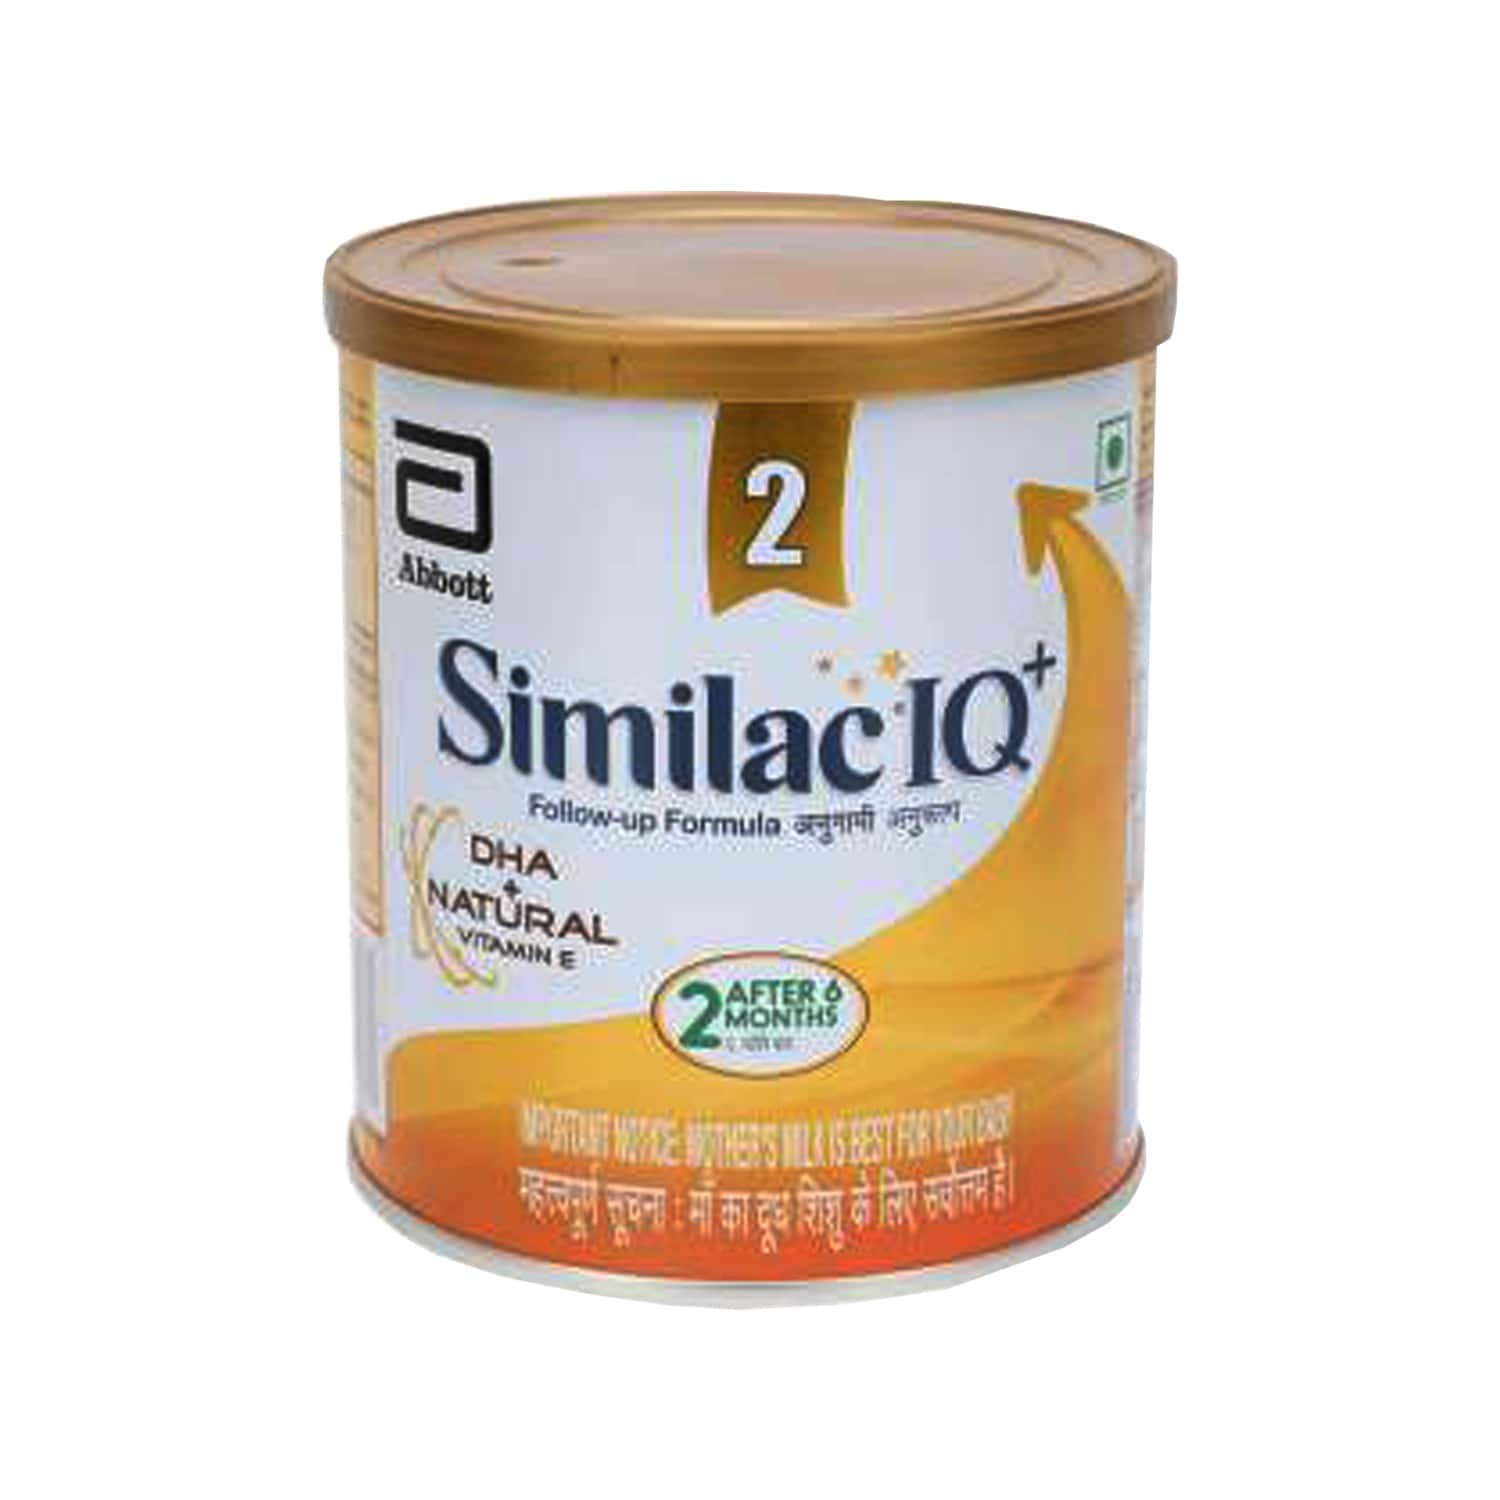 Similac Iq+ Baby Food Stage 2 Follow-up Formula With Dha + Natural Vitamin E (after 6 Months) Tin Of 400 G